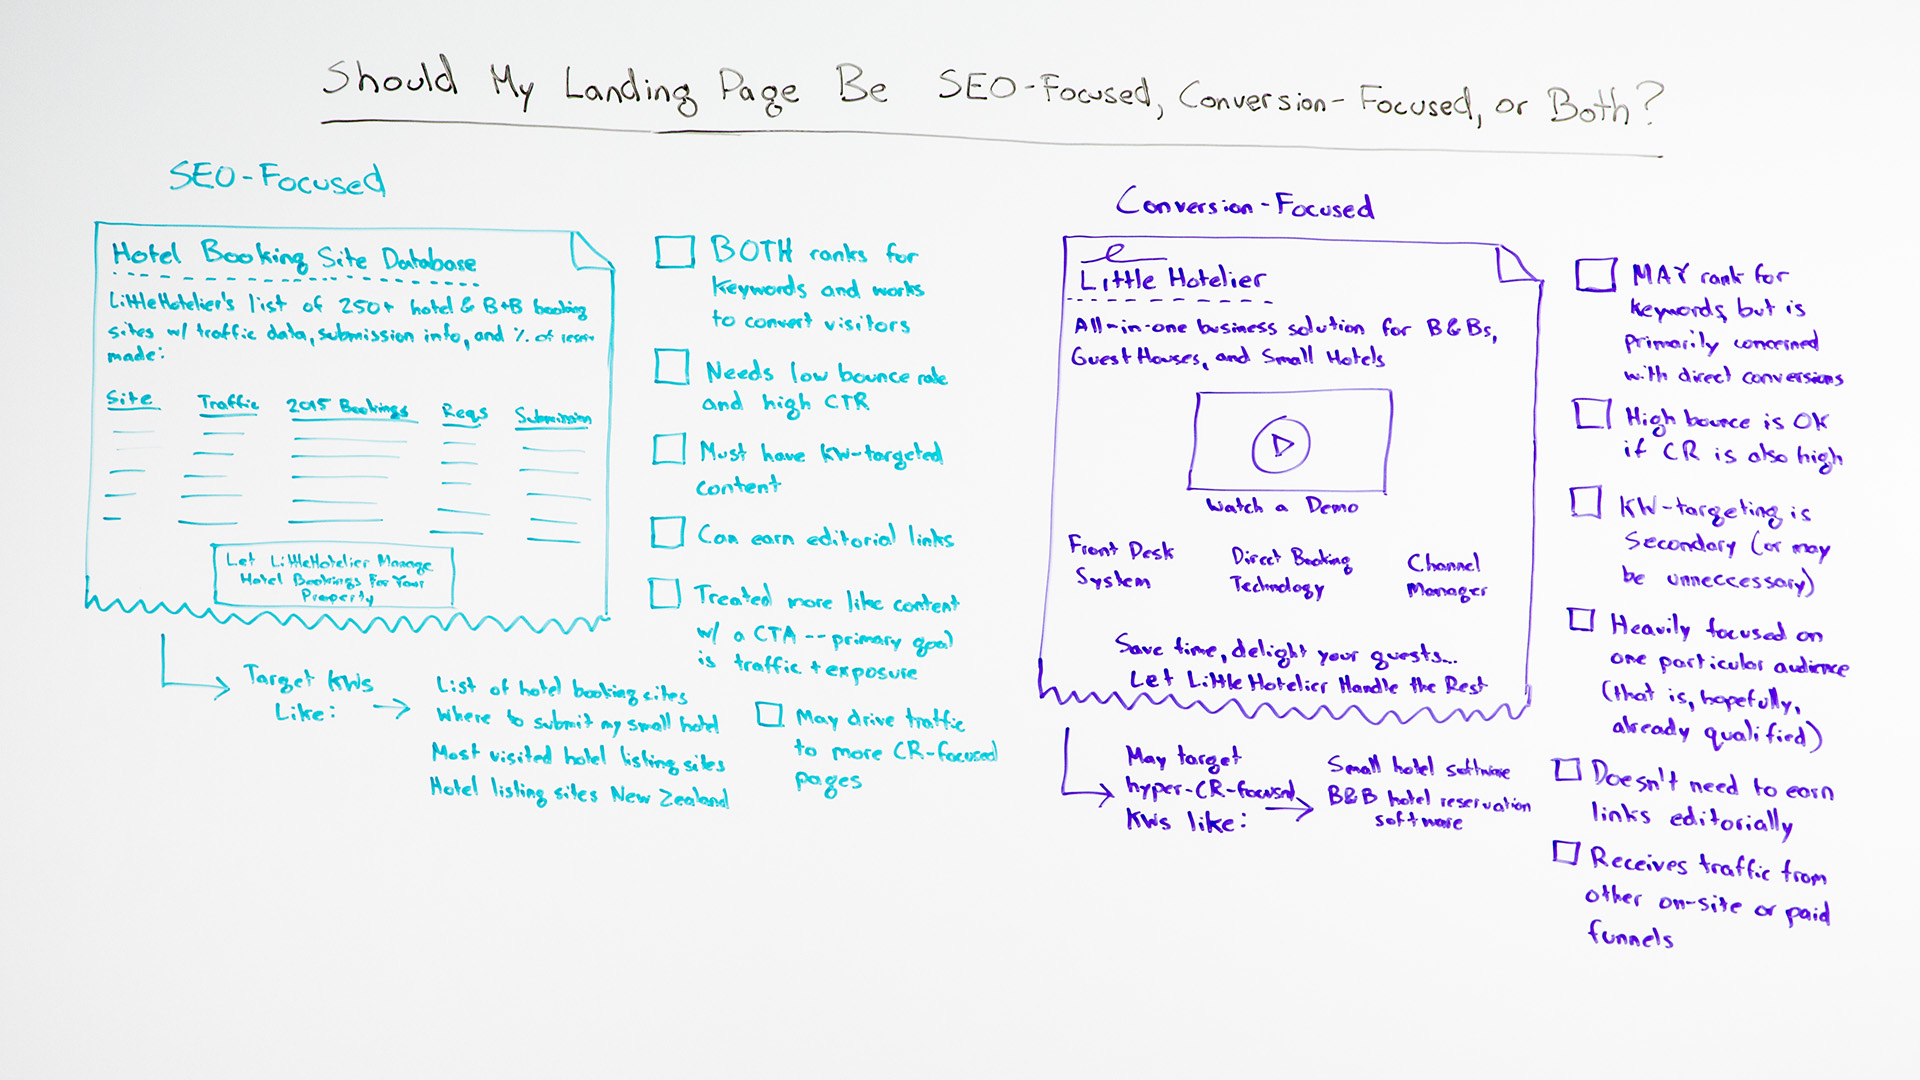 Should My Landing Page Be SEO-Focused, Conversion-Focused